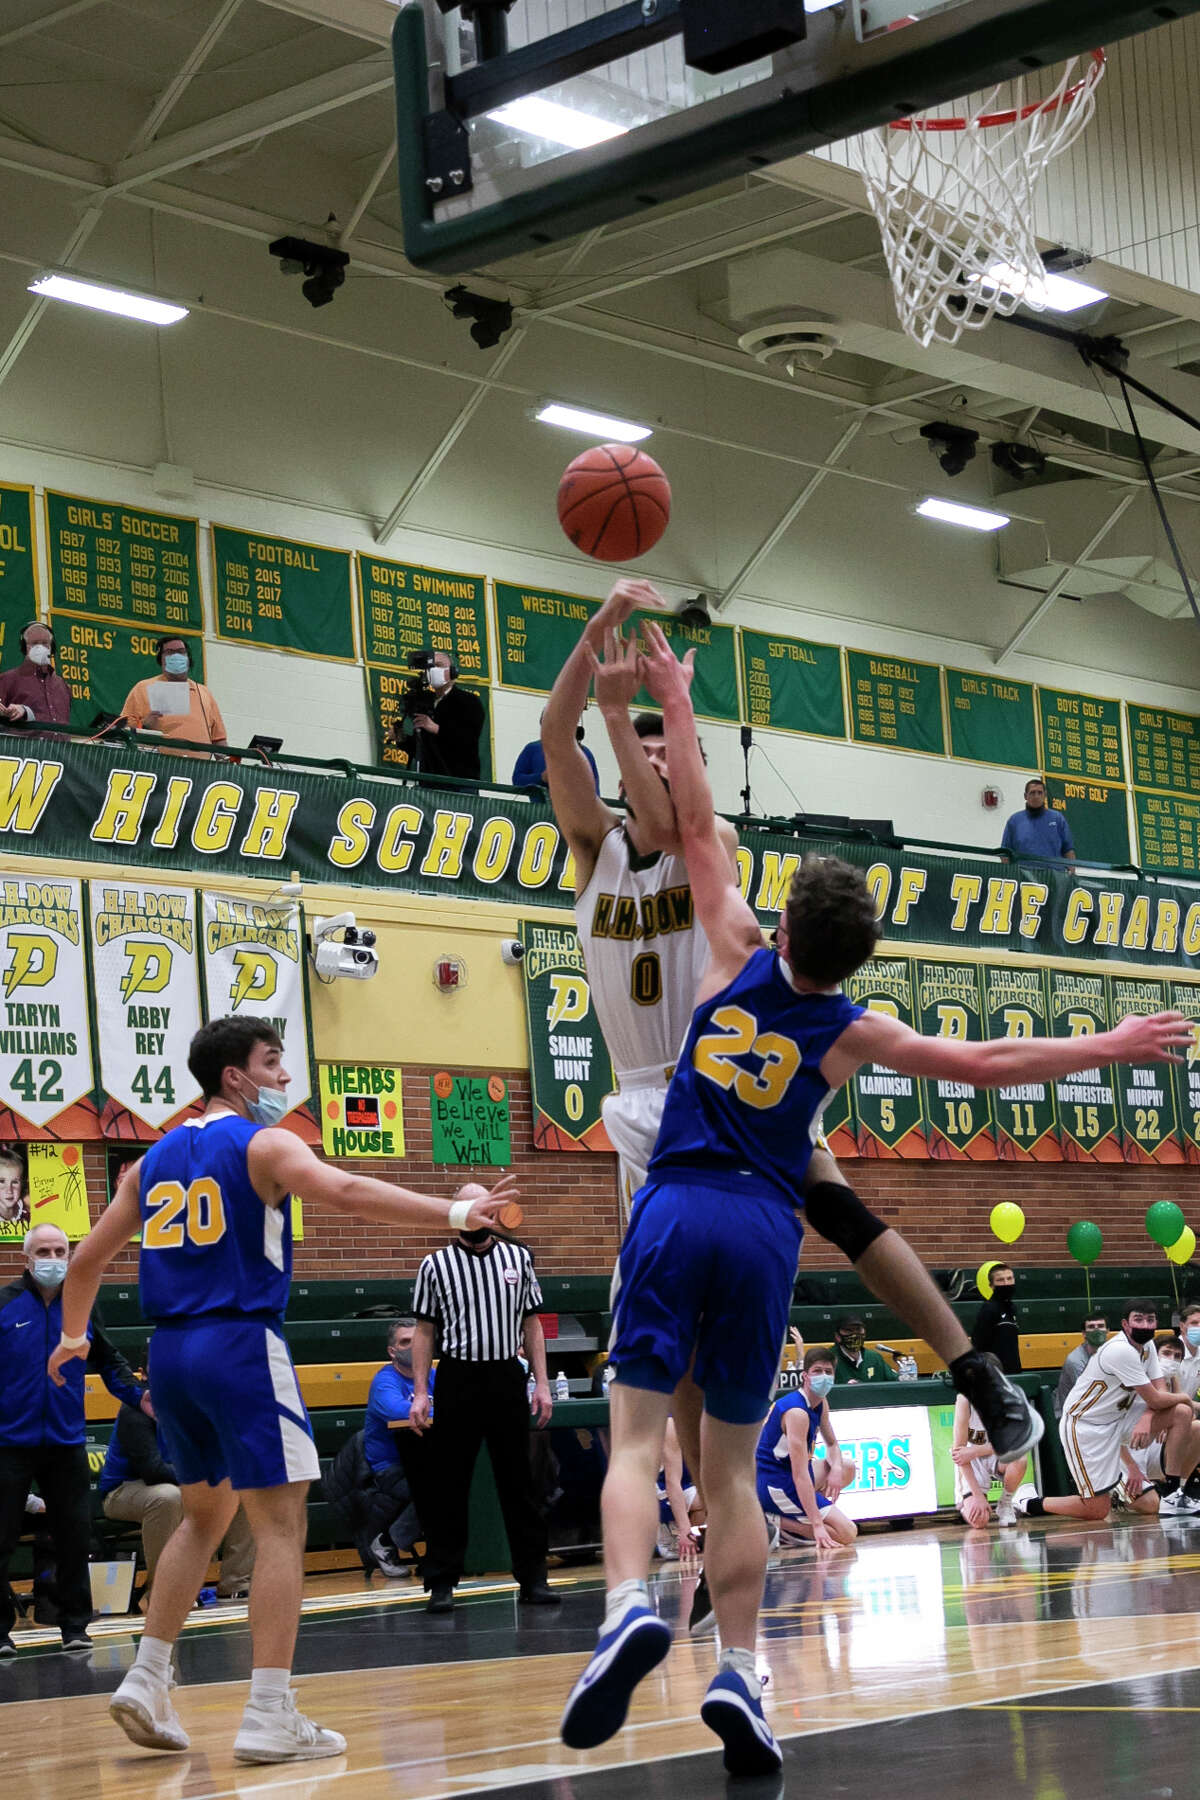 Dow's Shane Hunt takes a shot during a game against Midland Friday, March 12, 2021 at H. H. Dow High School. (Doug Julian/for the Daily News)